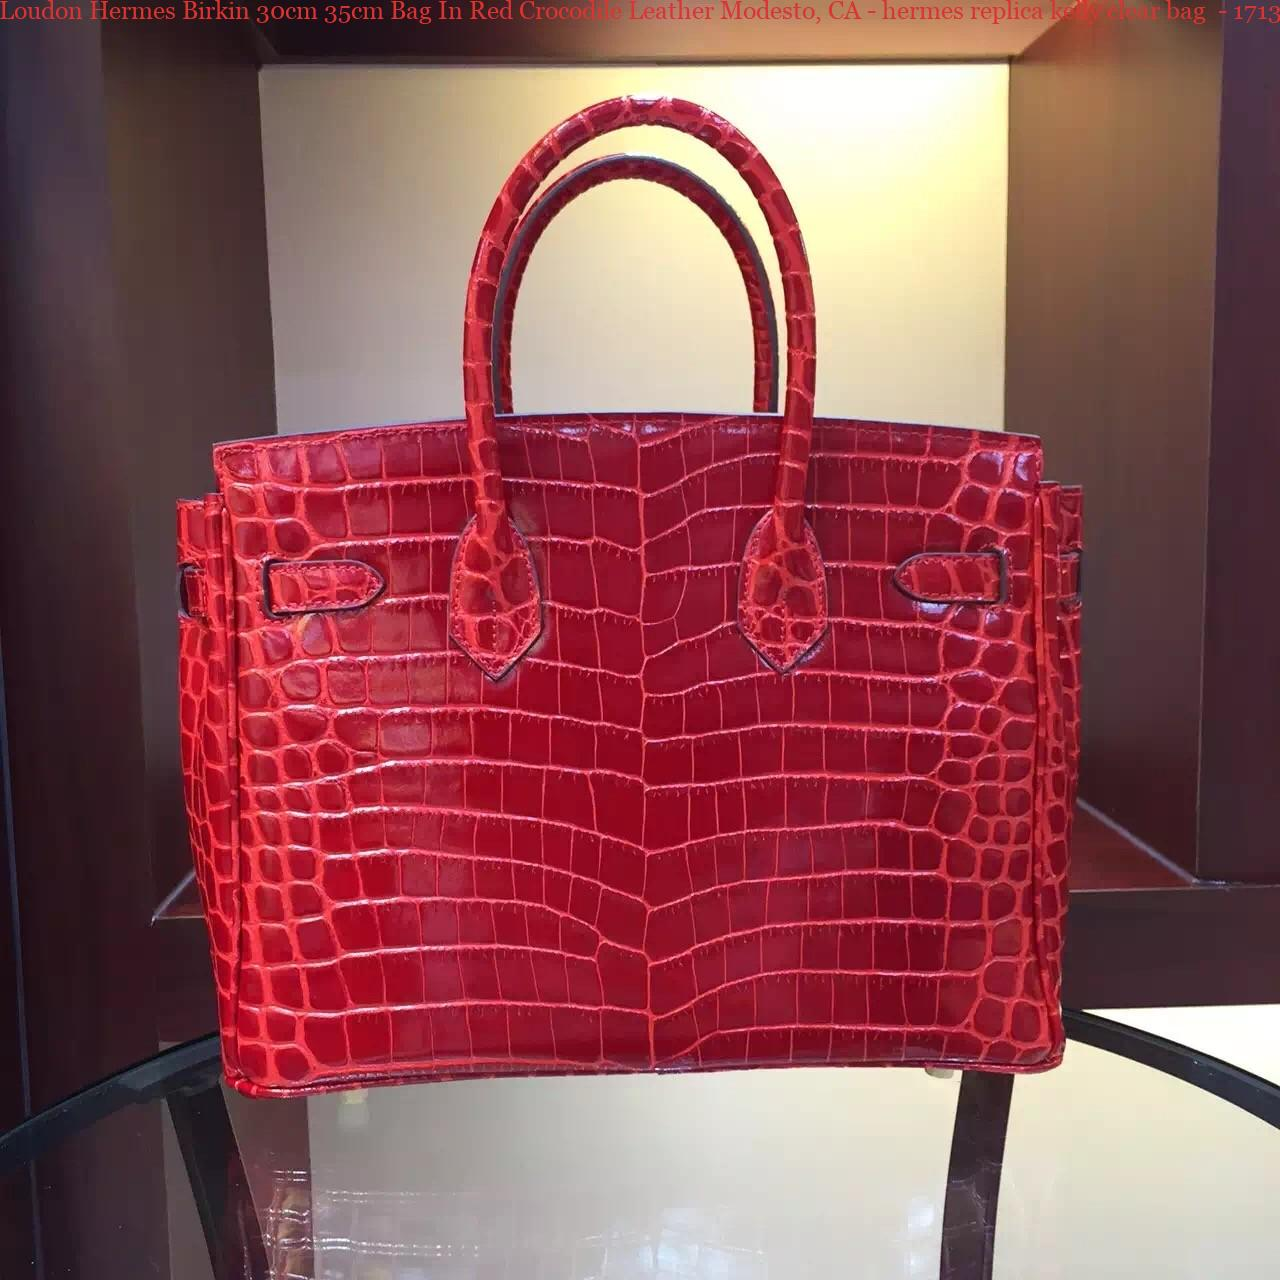 5040cdd7c6 Loudon Hermes Birkin 30cm 35cm Bag In Red Crocodile Leather Modesto ...